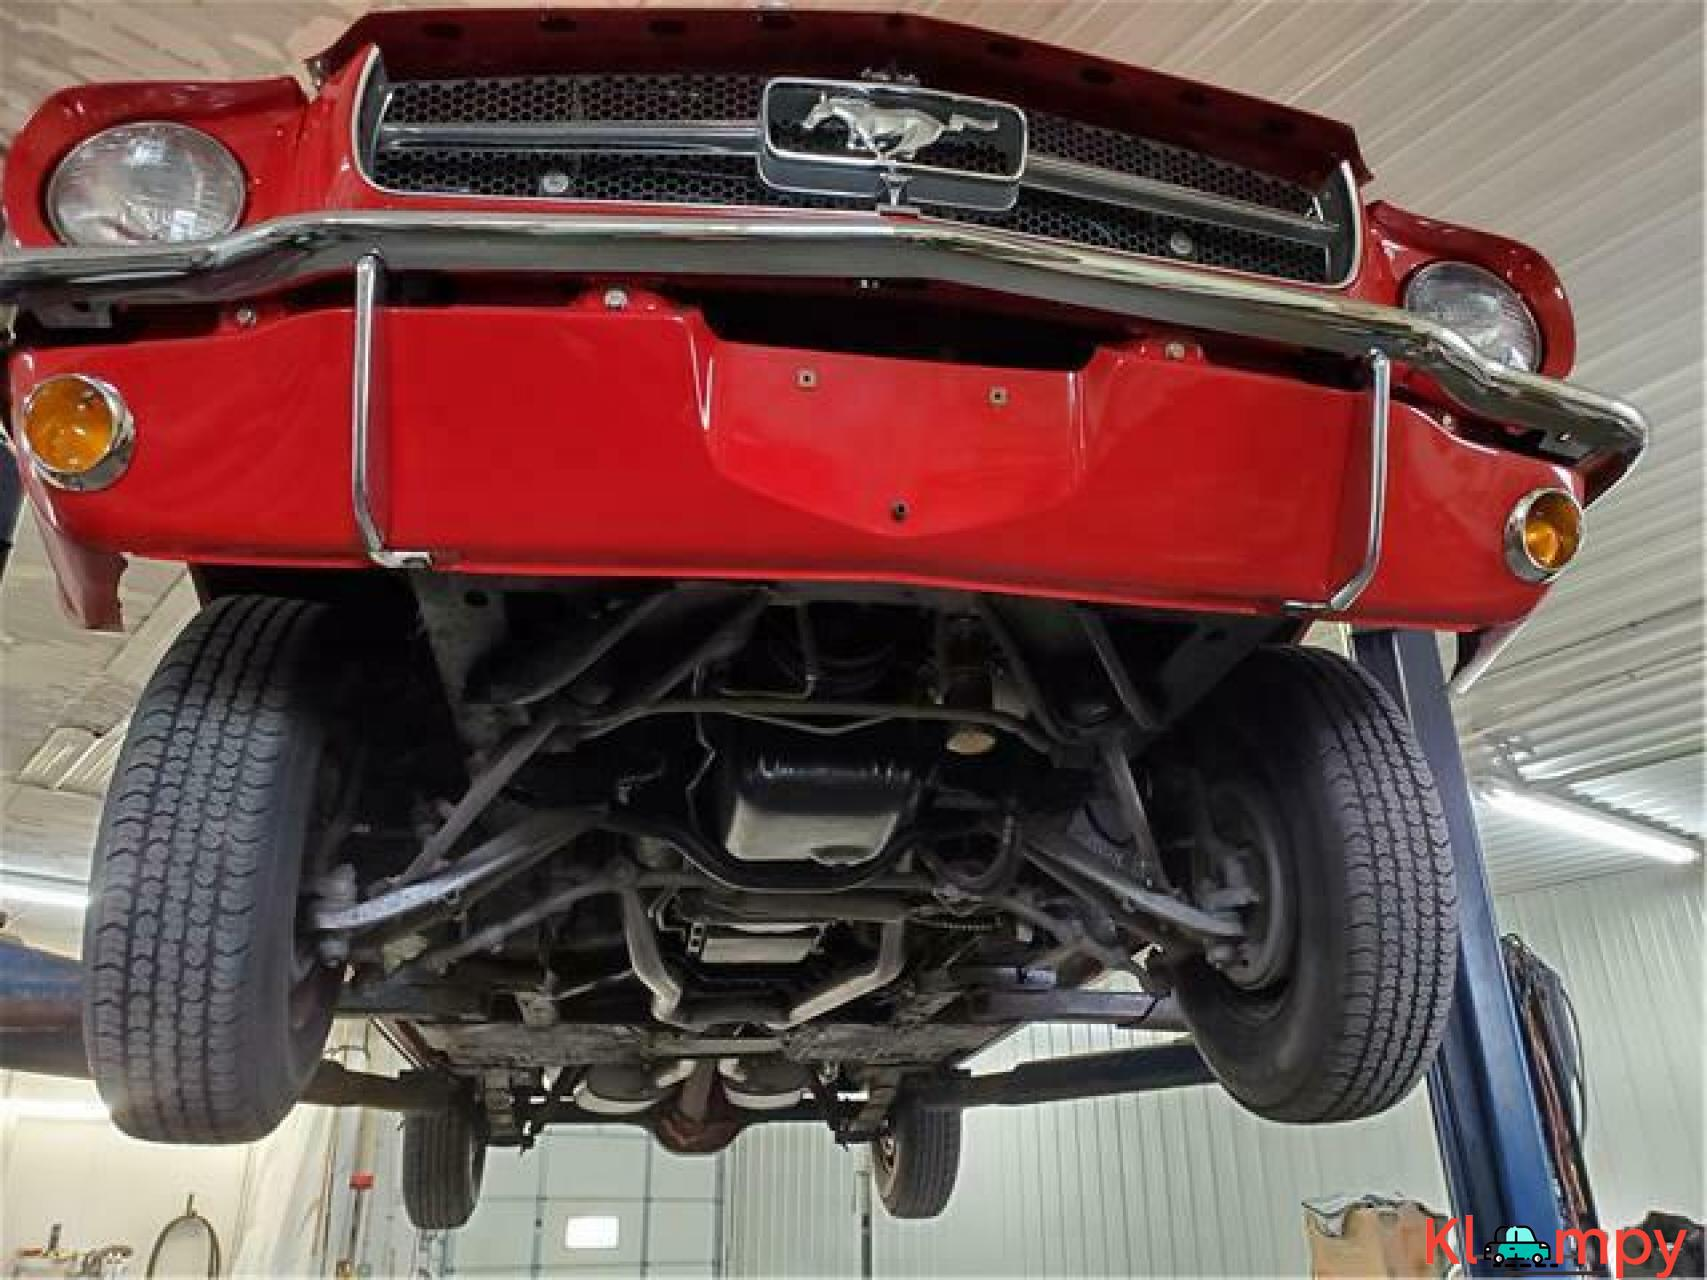 1965 Ford Mustang Rear Wheel Drive - 18/20